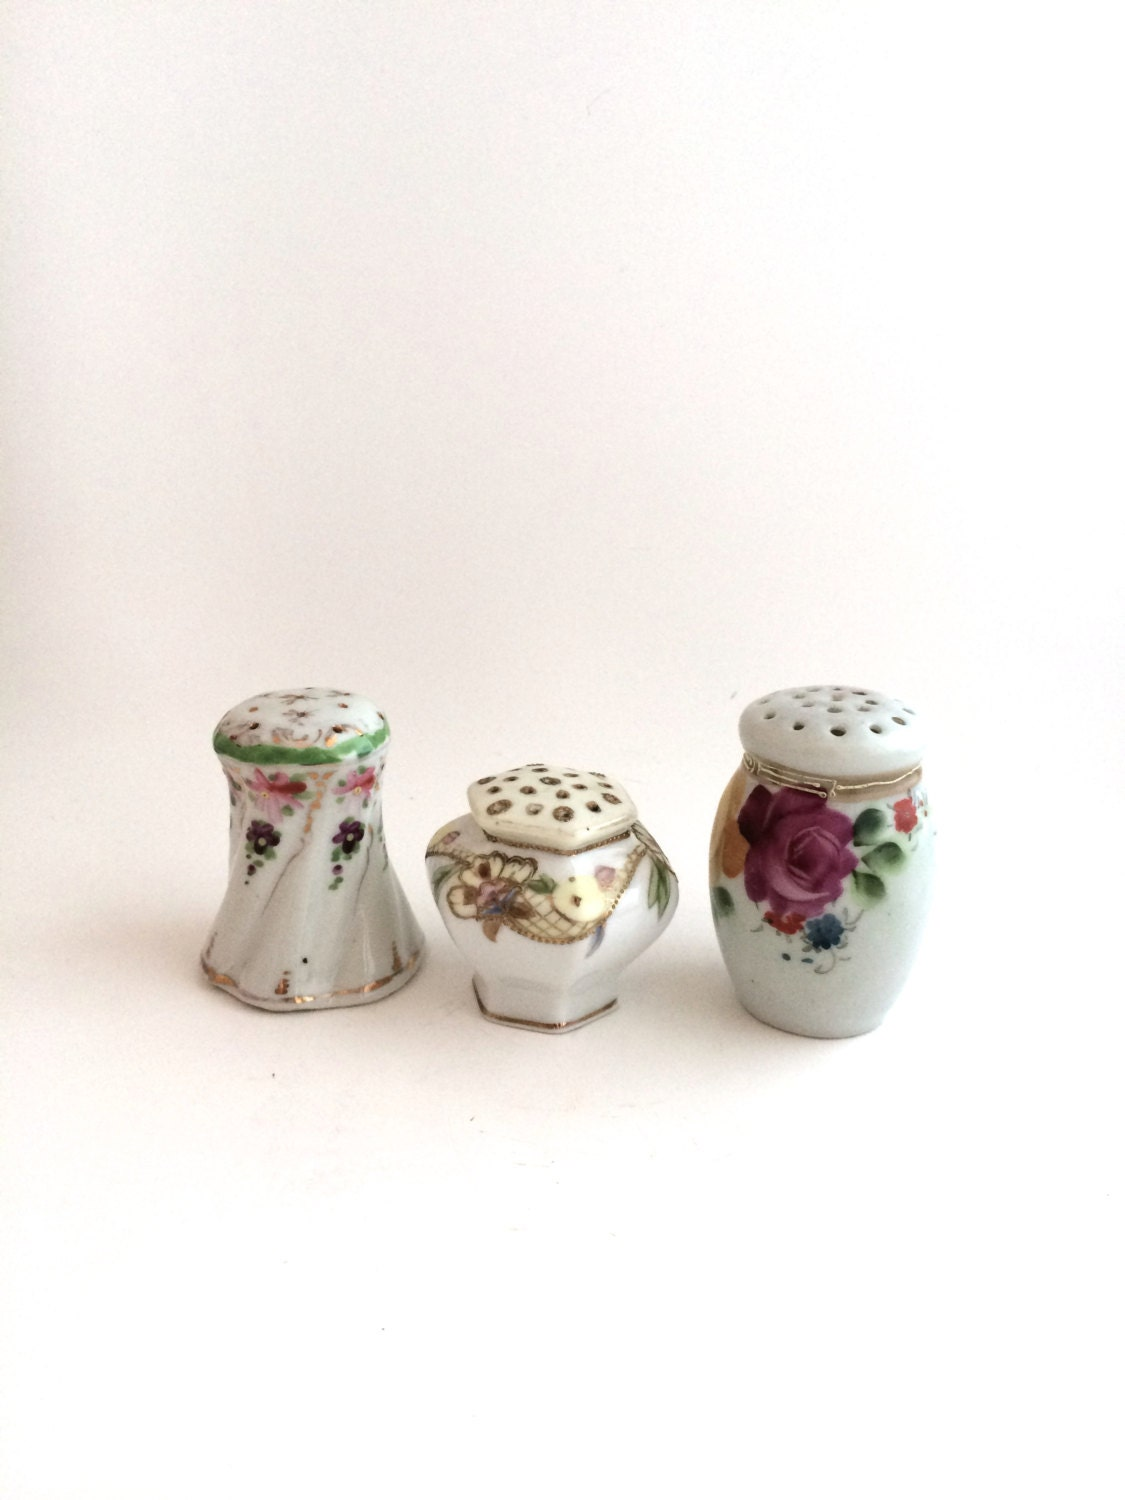 Salt and pepper shakers a trio of design and color Colorful salt and pepper shakers